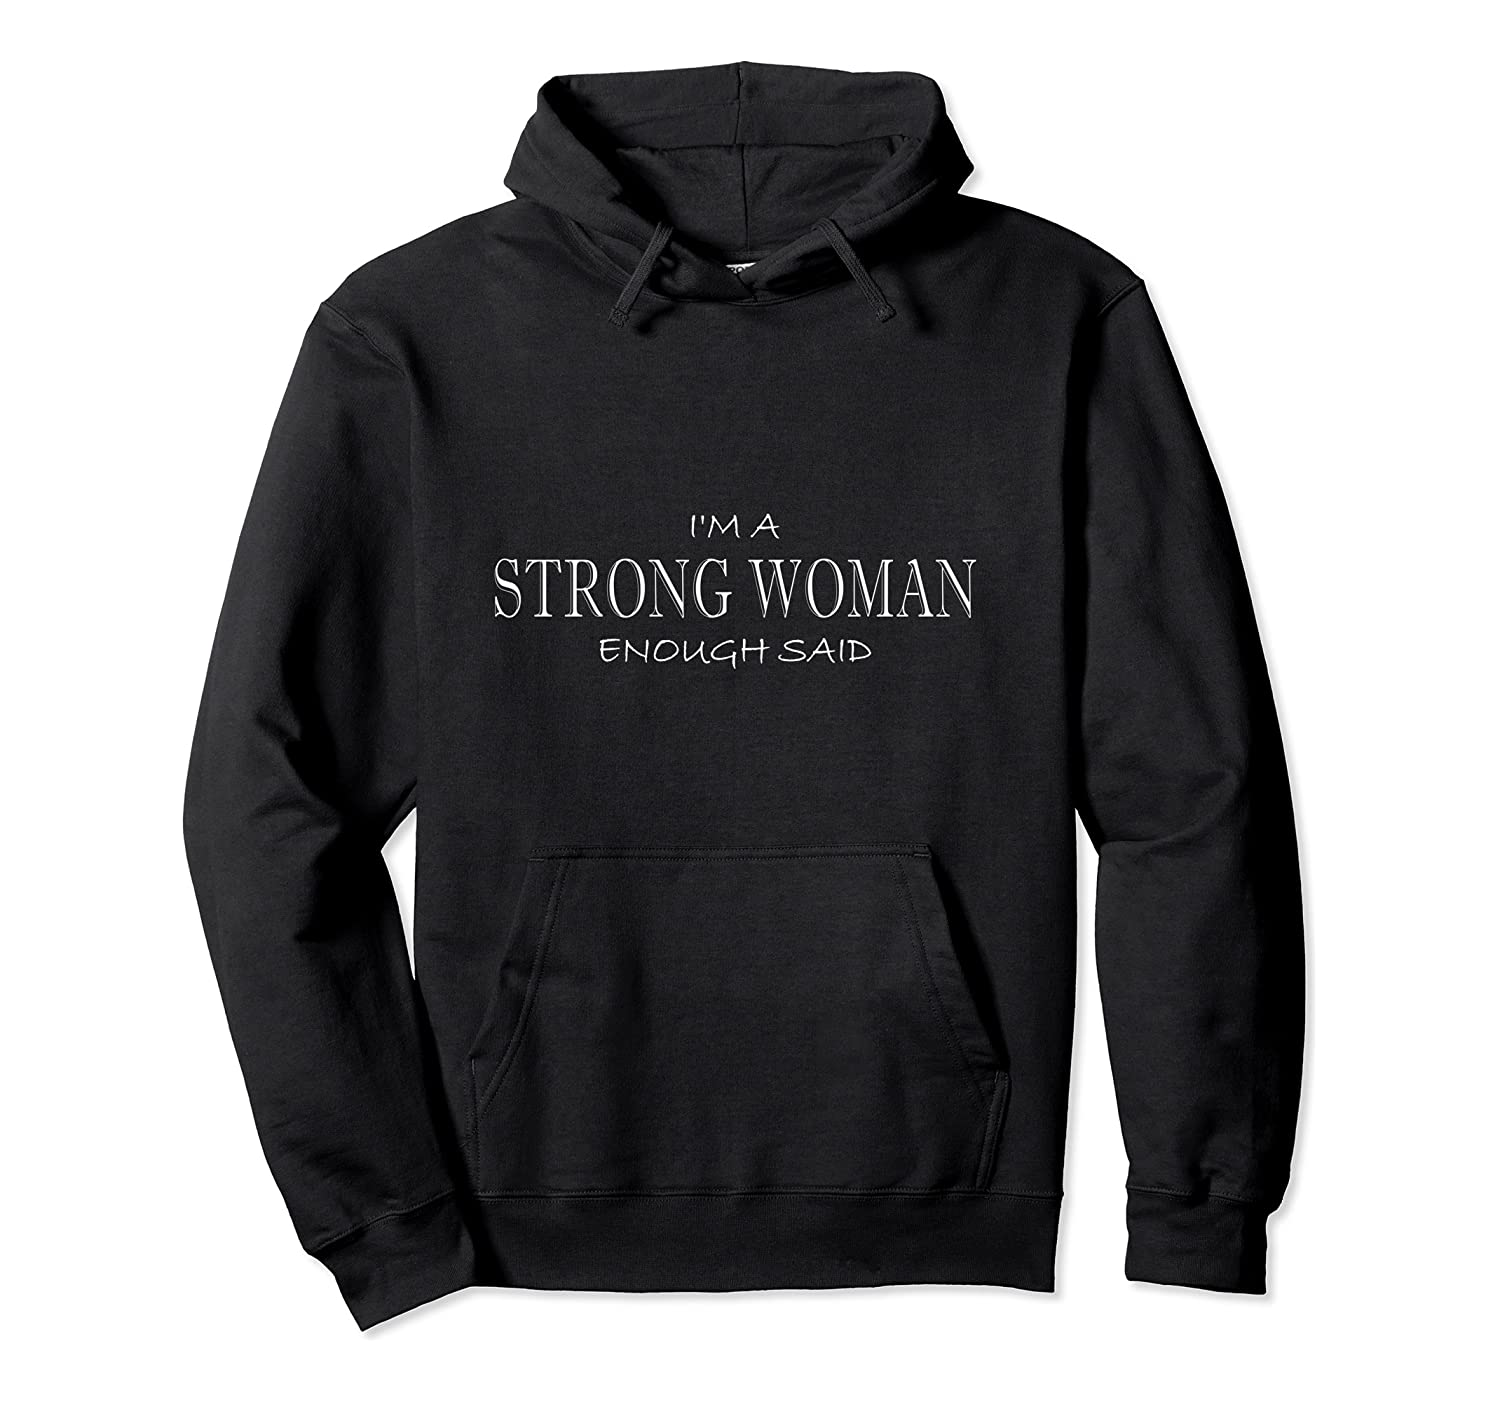 STRONG WOMAN Enough Said anti sexism oppression Hoodie